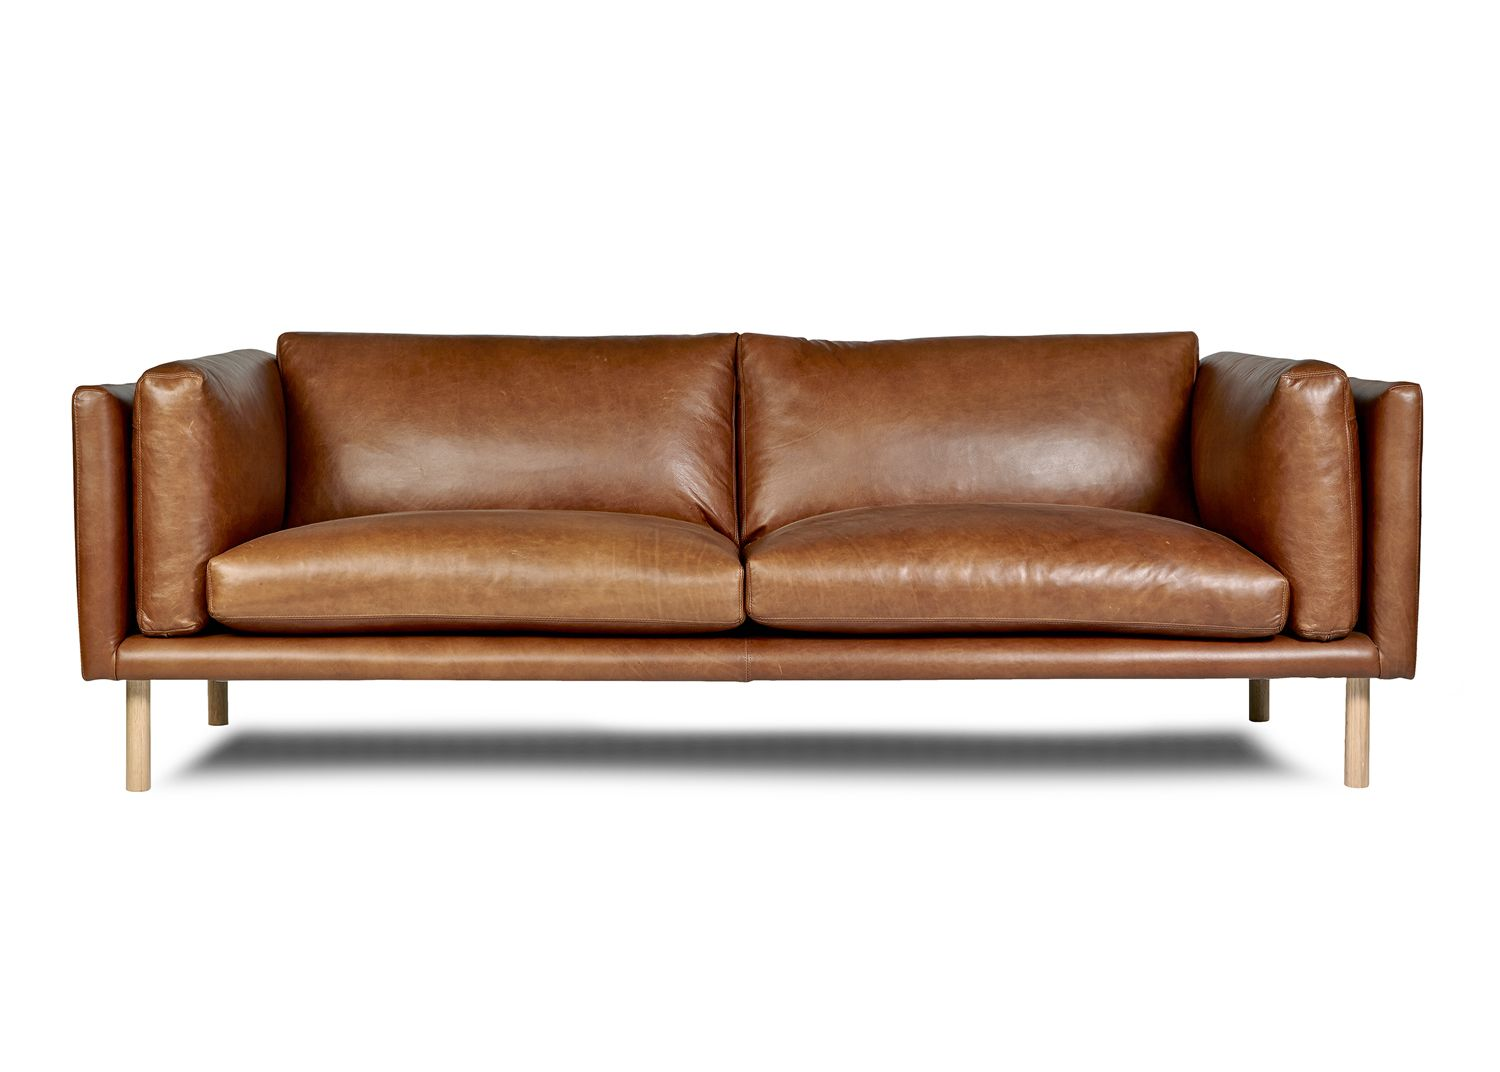 Couches Perth Conrad Sofa By Arthur G Modern Leather Sofa Made In